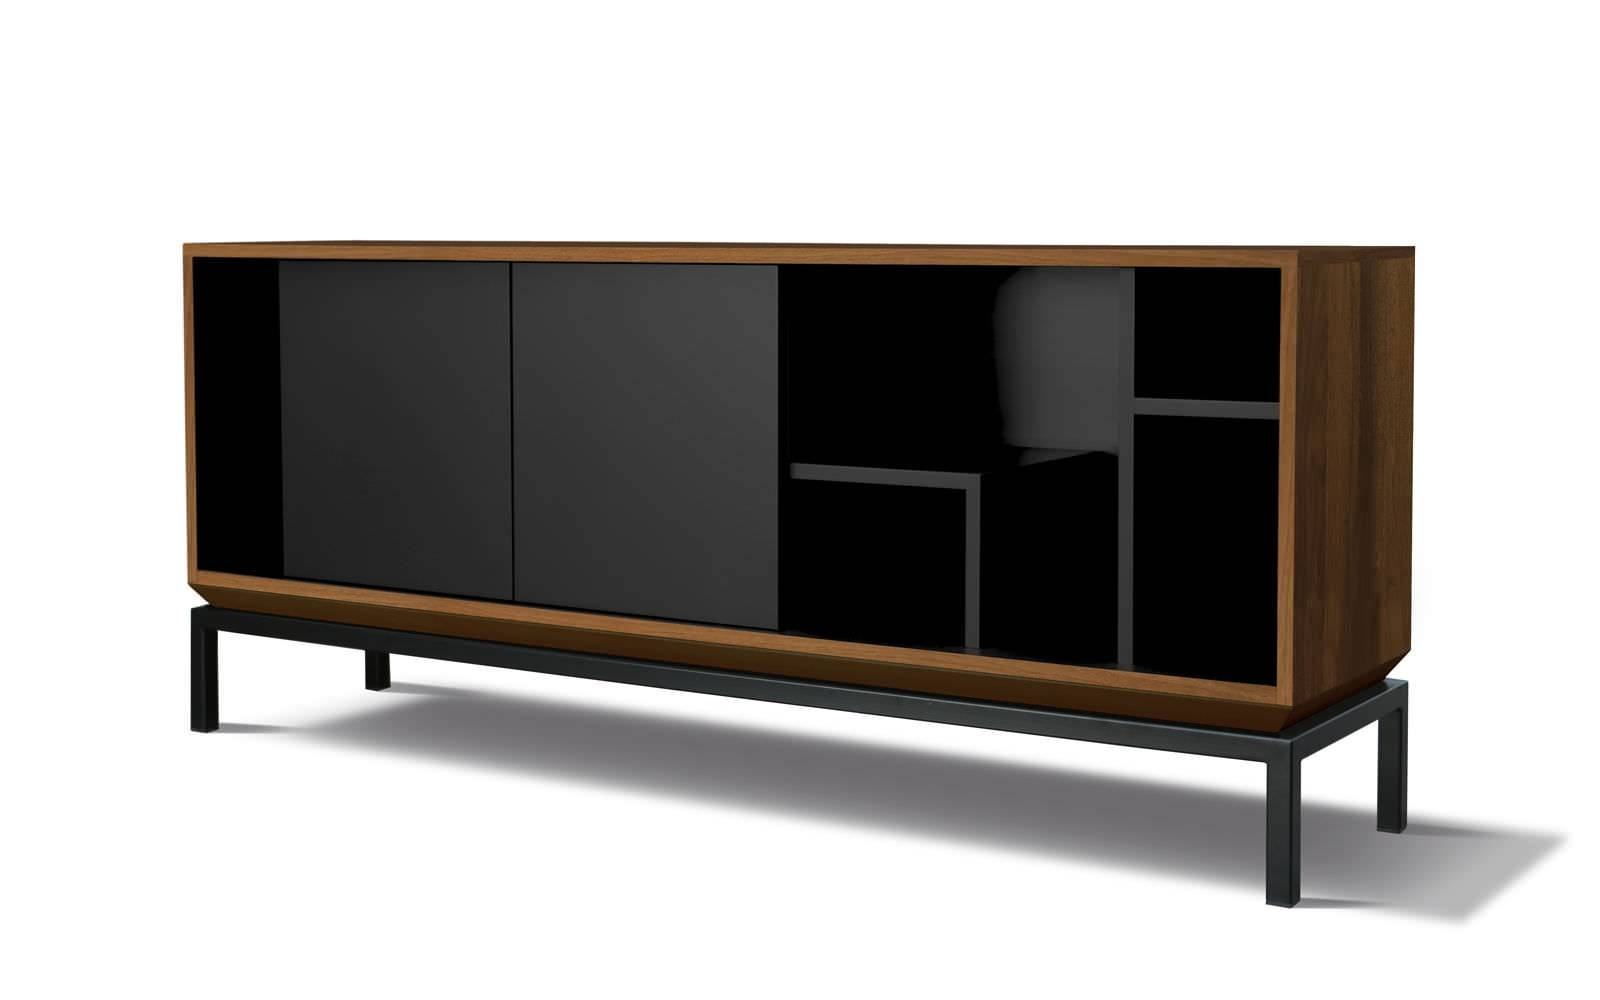 Contemporary Sideboard / Oak / Walnut / Lacquered Mdf – My City Intended For Walnut And Black Sideboards (#4 of 15)